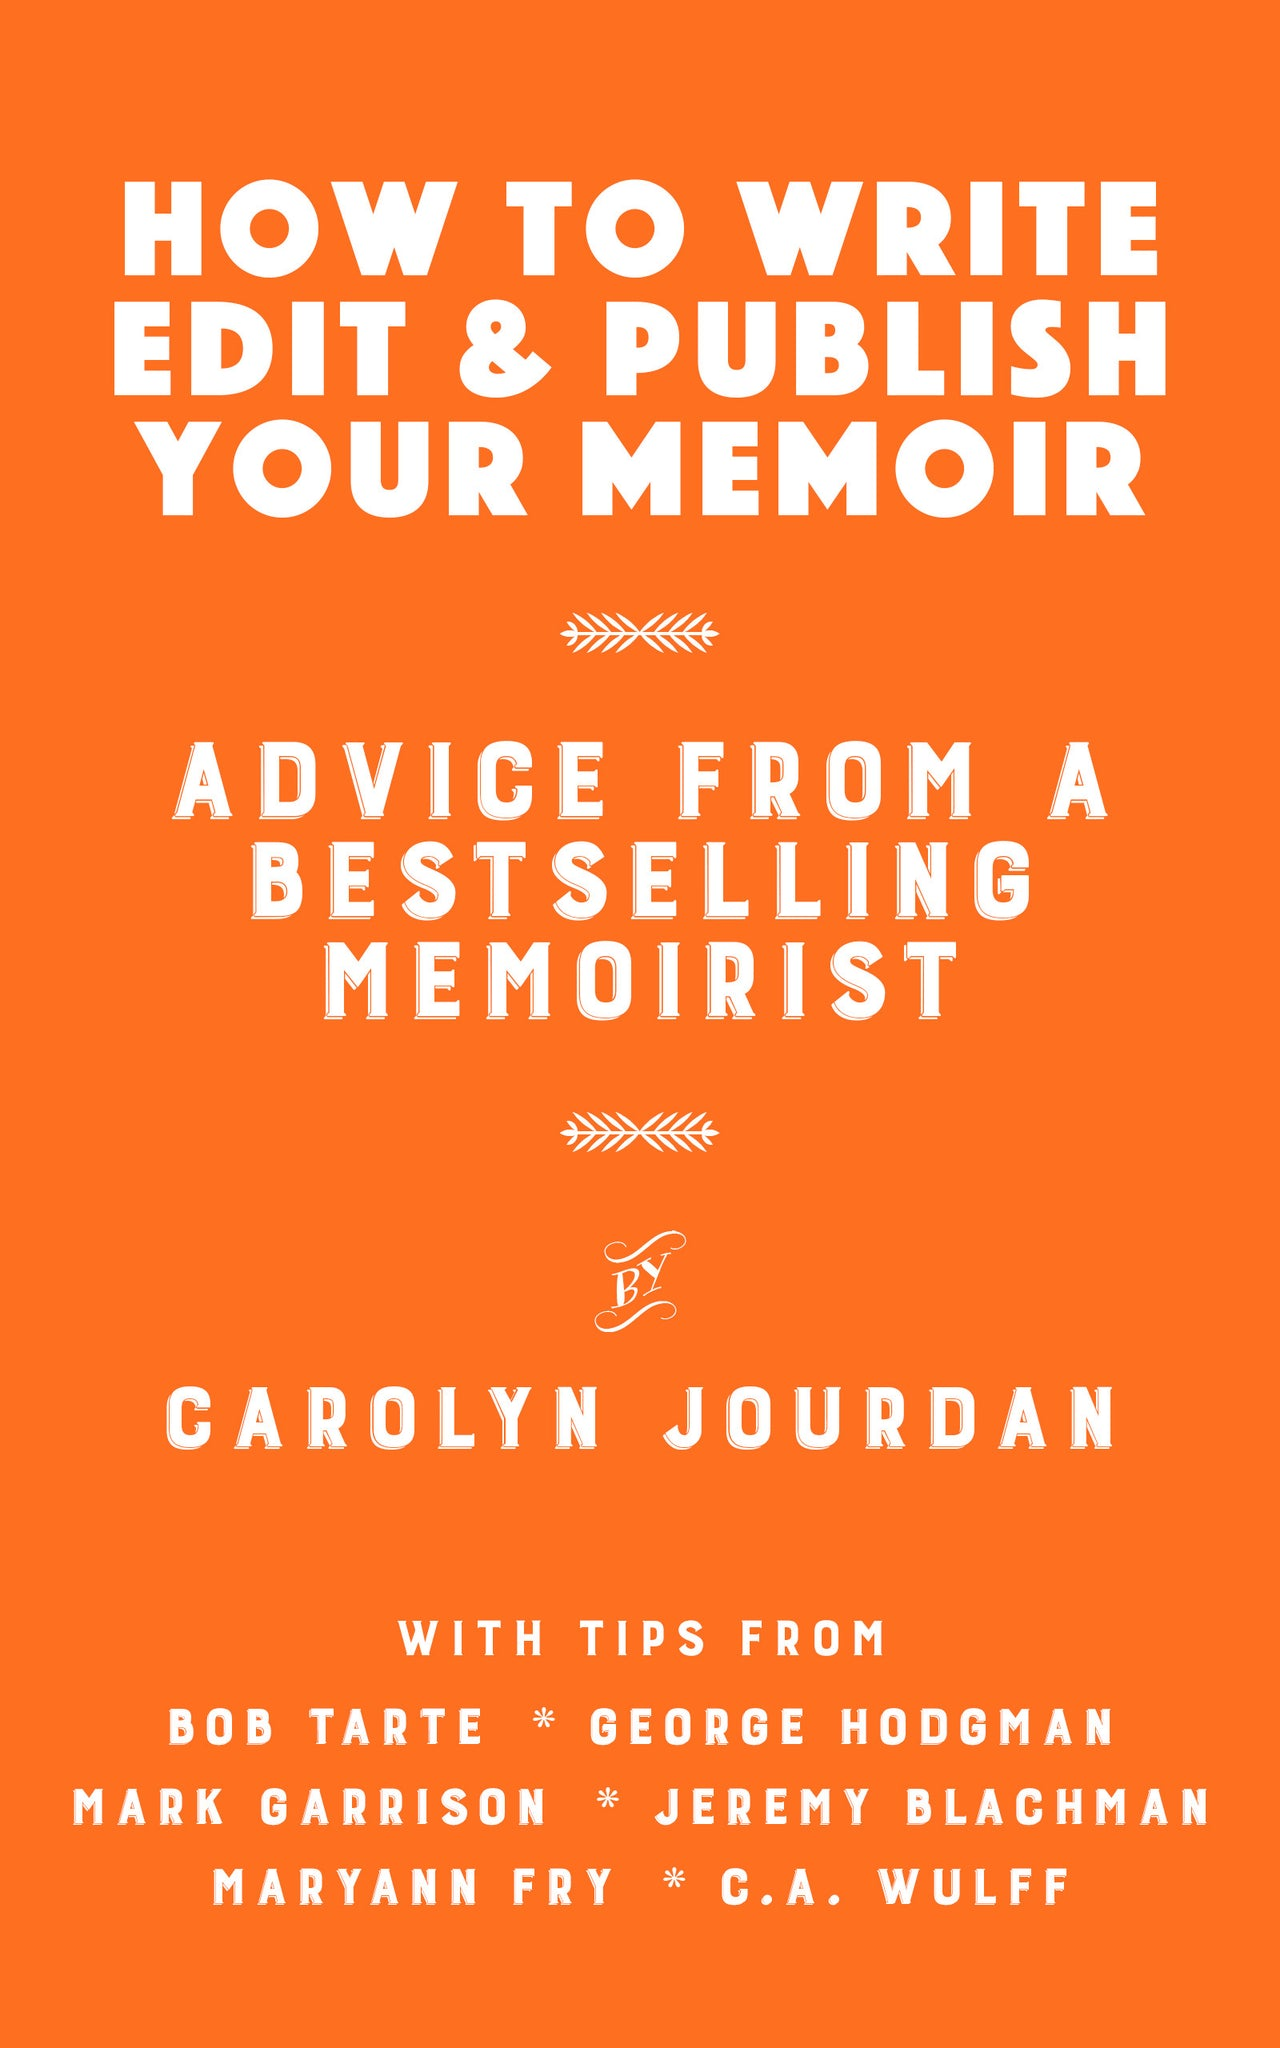 How to Write, Edit, & Publish Your Memoir by Carolyn Jourdan - LitNuts.com